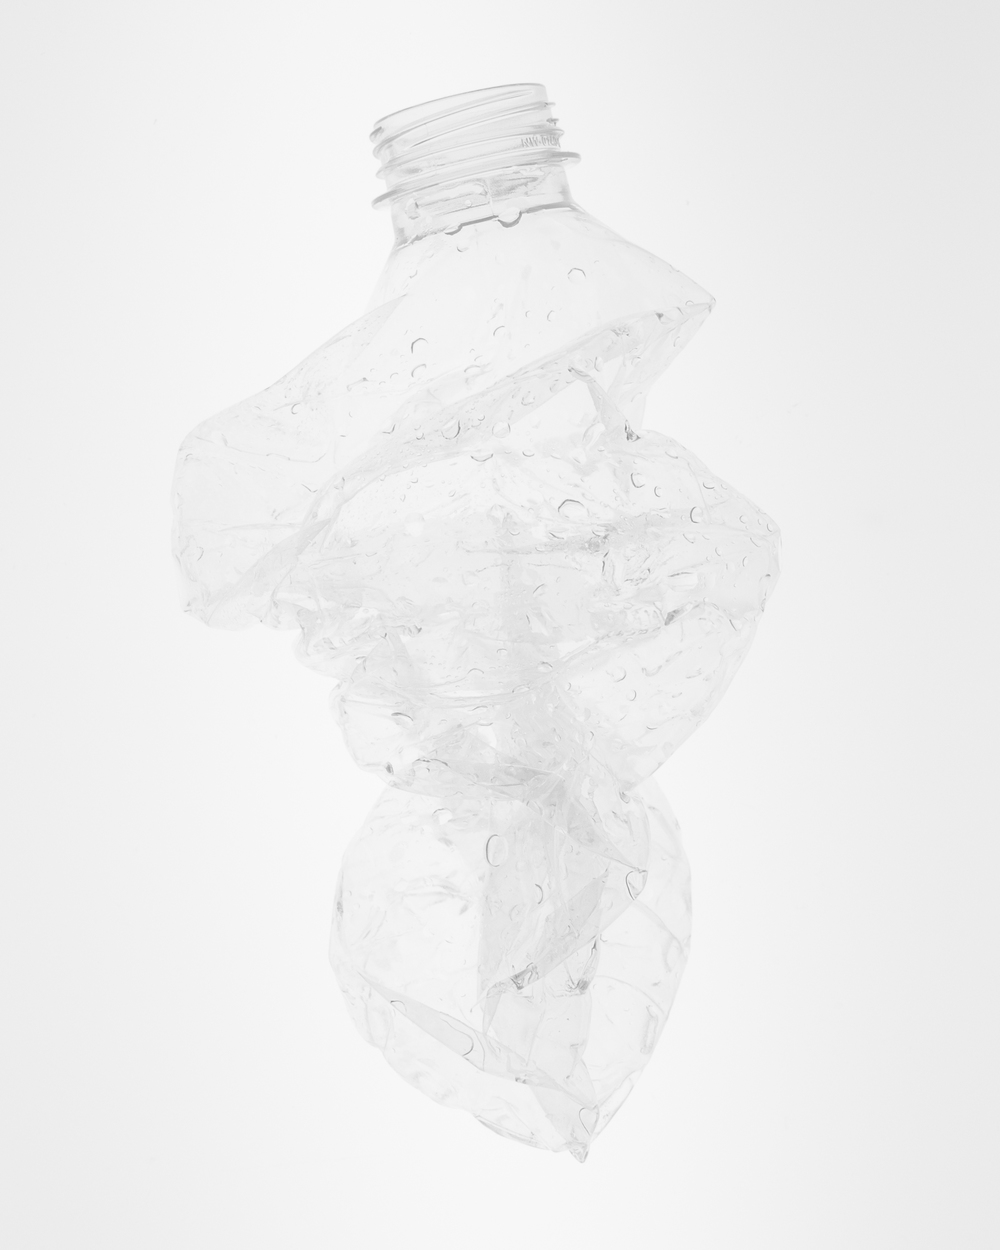 Bottle No.1, 30x24, Transparent Inkjet Print, 2014